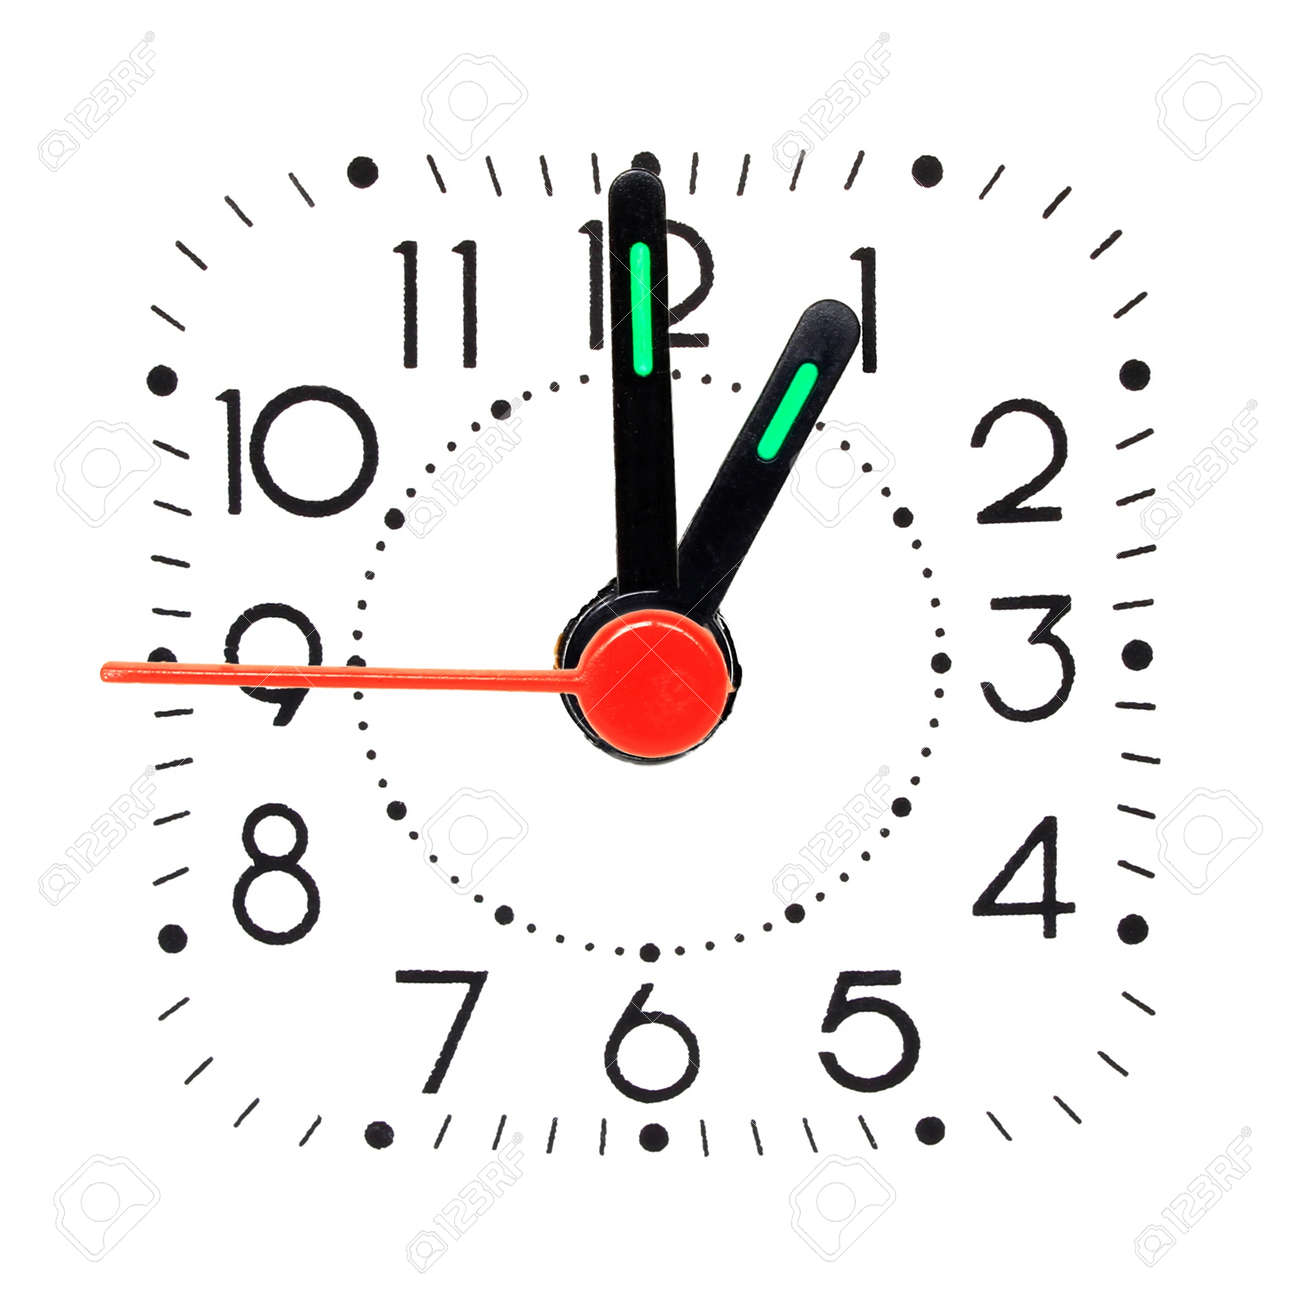 One O Clock Stock Photos & Pictures. Royalty Free One O Clock ...